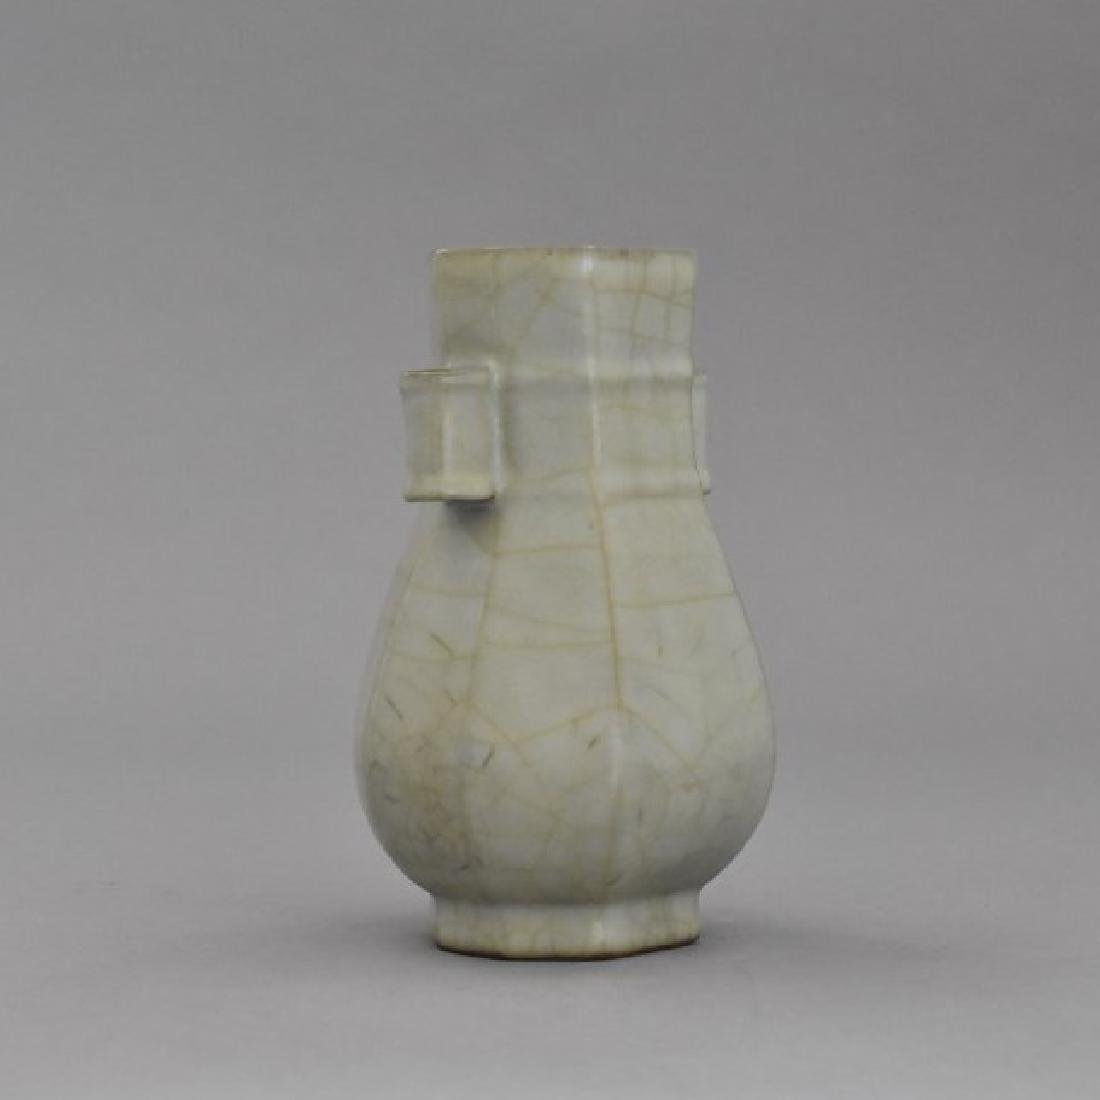 A CHINESE GUAN WARE BOTTLE VASE